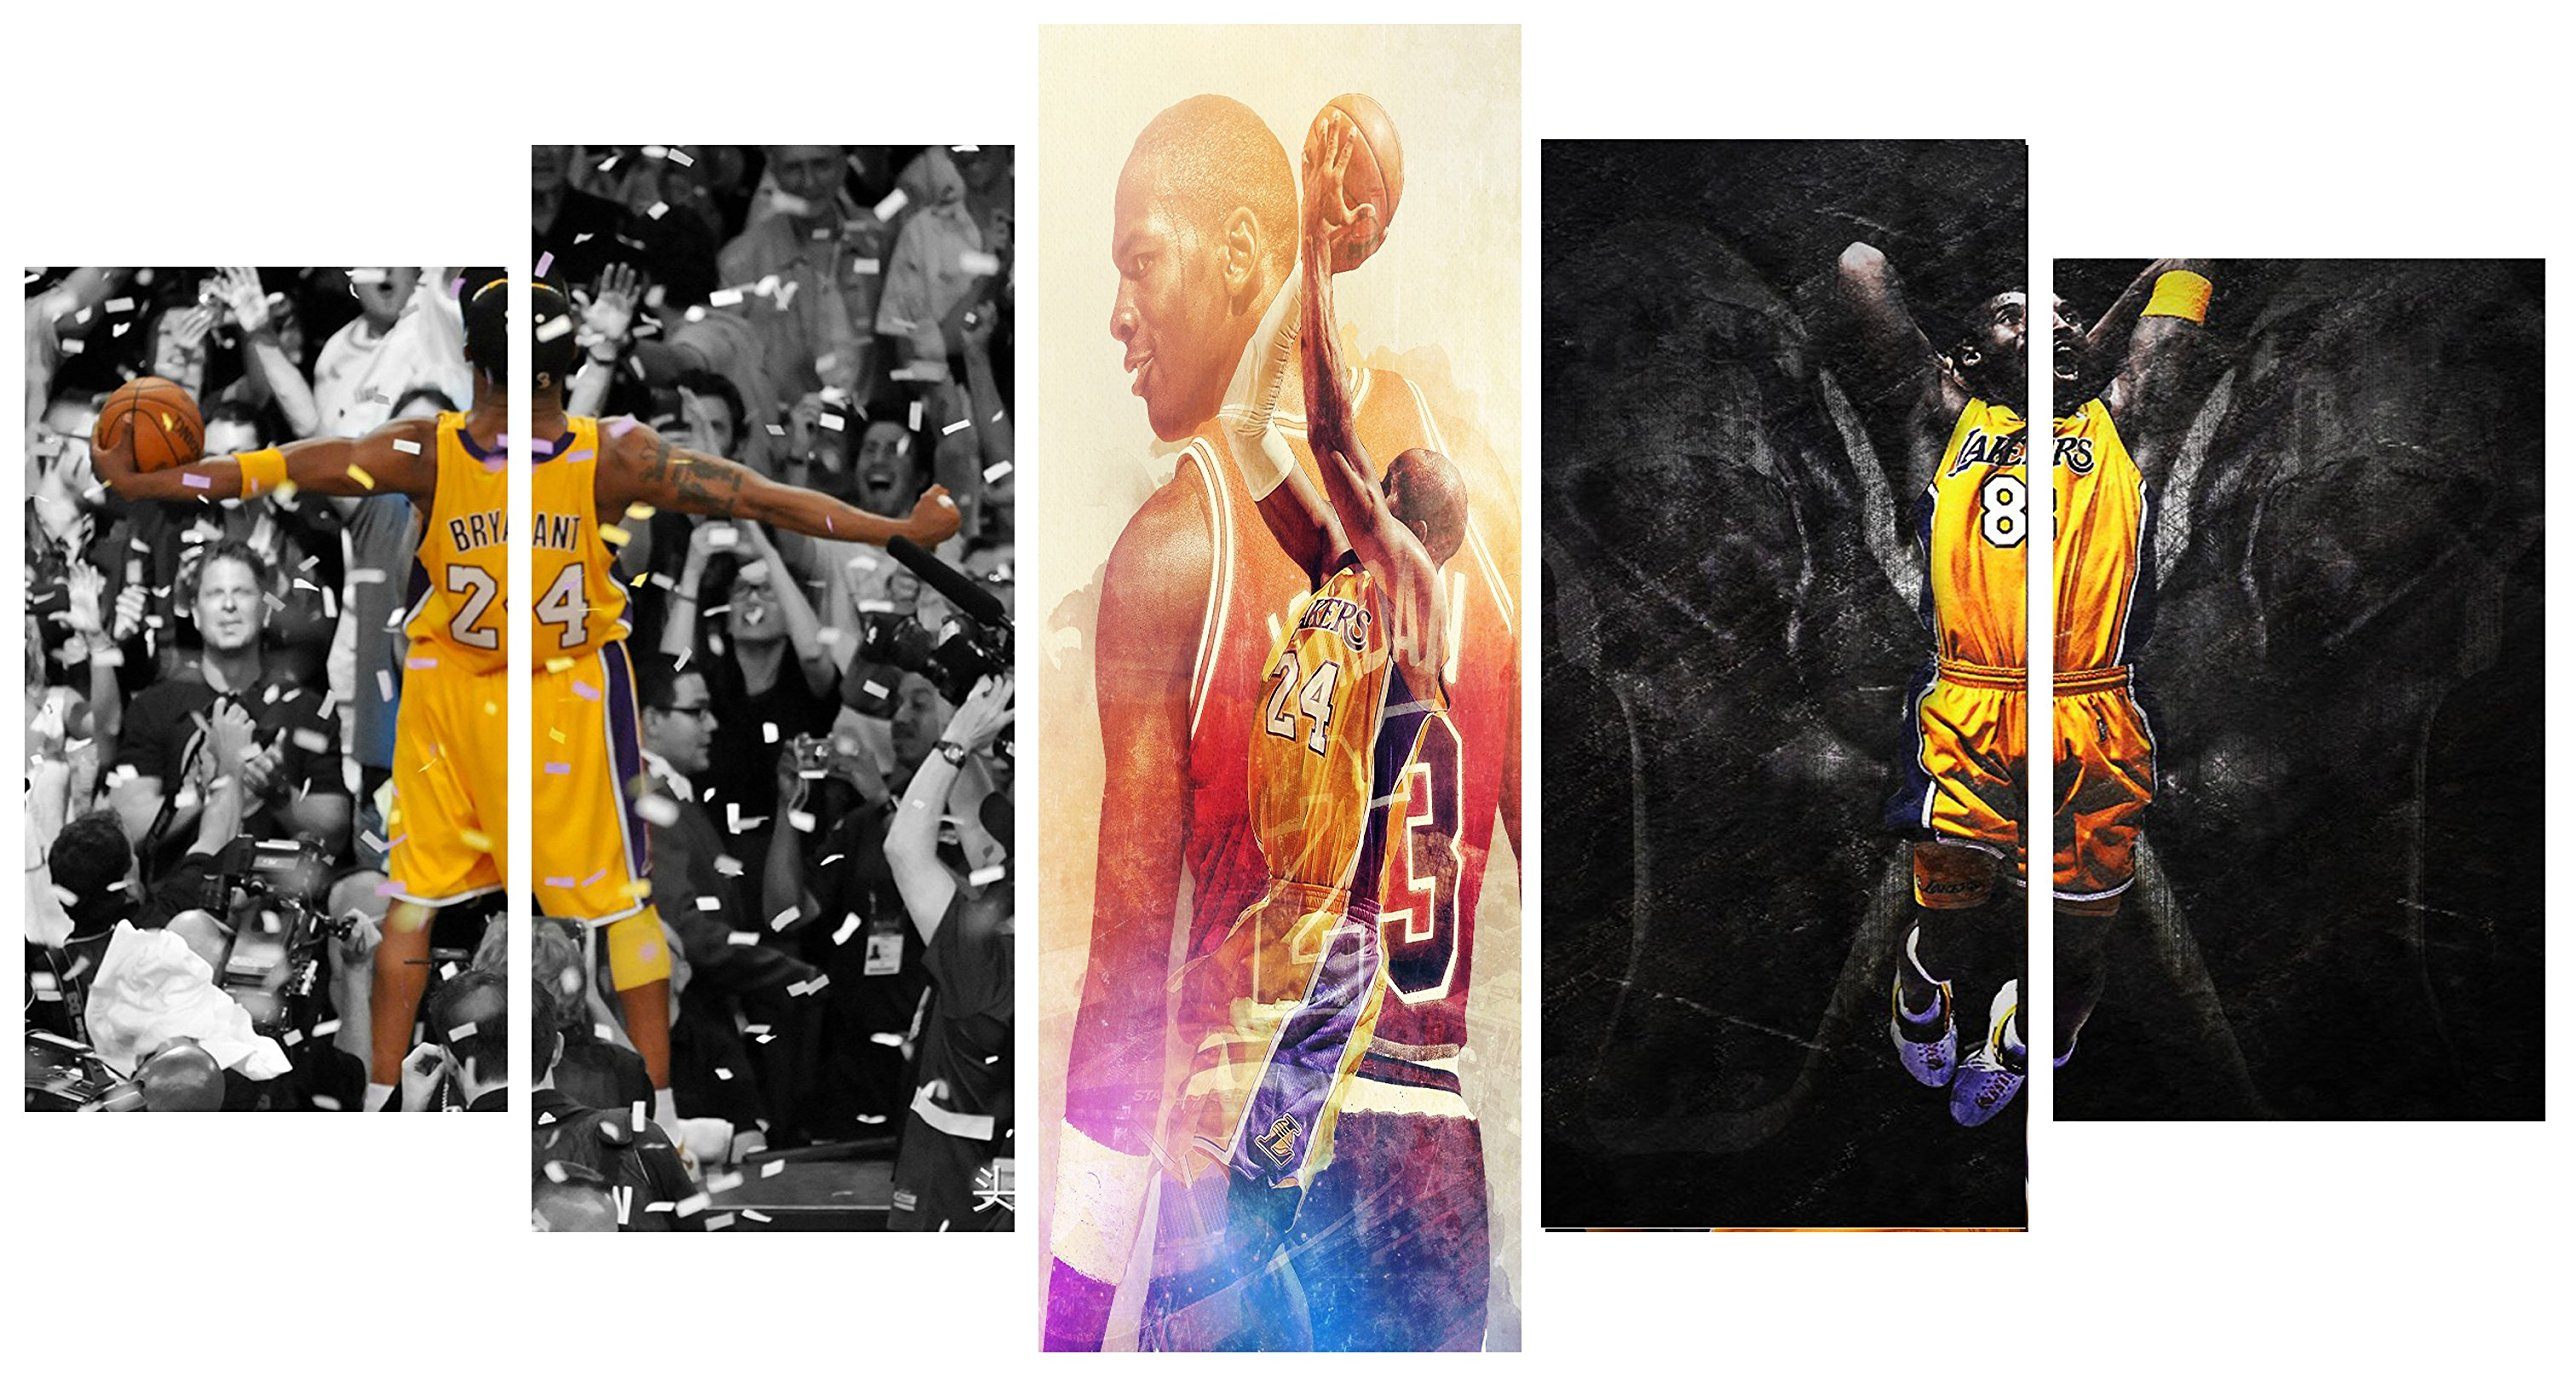 Kobe Bryant's Motivational/Inspirational Fighter Spirit Canvas Painting/Prints - 5 piece Canvas (20x35cm x 2, 20x45cm x 2, 20x55cm x 1)